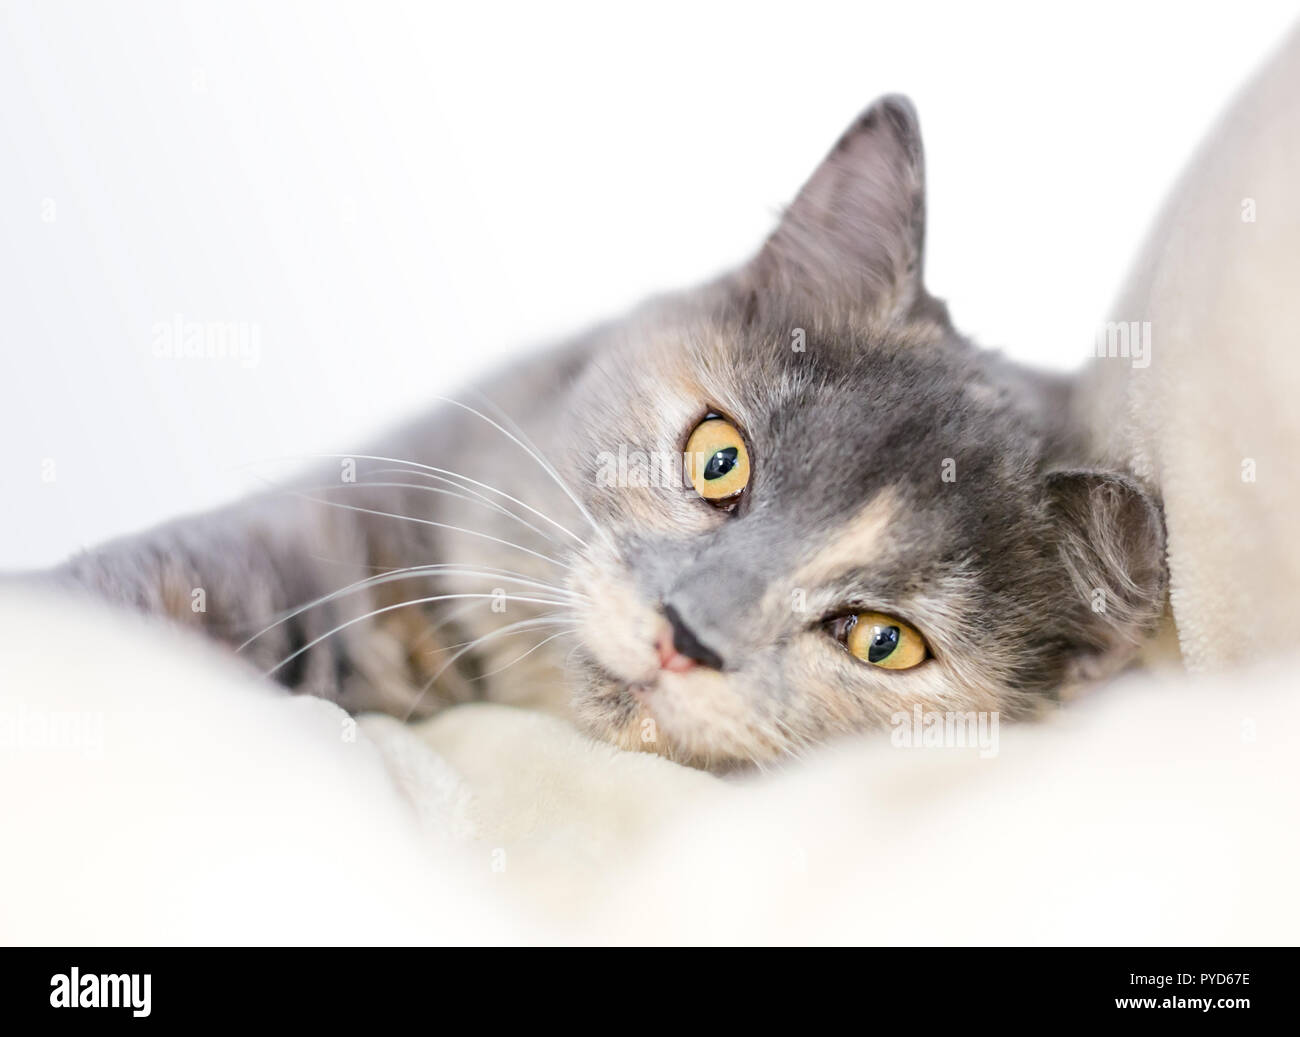 A Dilute Tortoiseshell cat with yellow eyes relaxing on a soft blanket - Stock Image